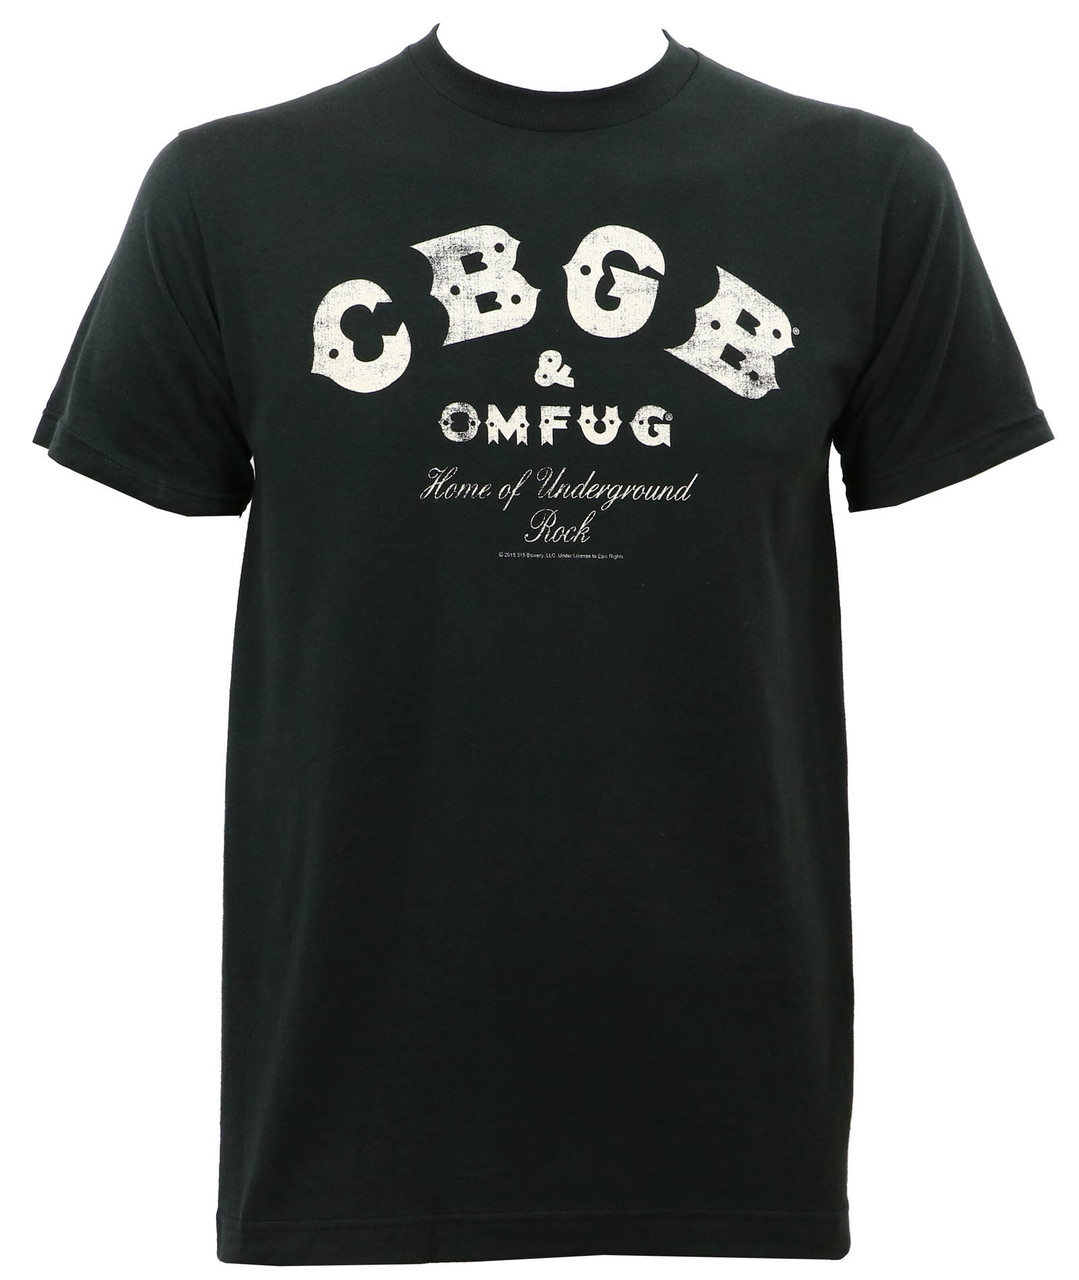 https://d3d71ba2asa5oz.cloudfront.net/12013655/images/cbgb02%20cbgb%20distressed%20logo%20tee.jpg